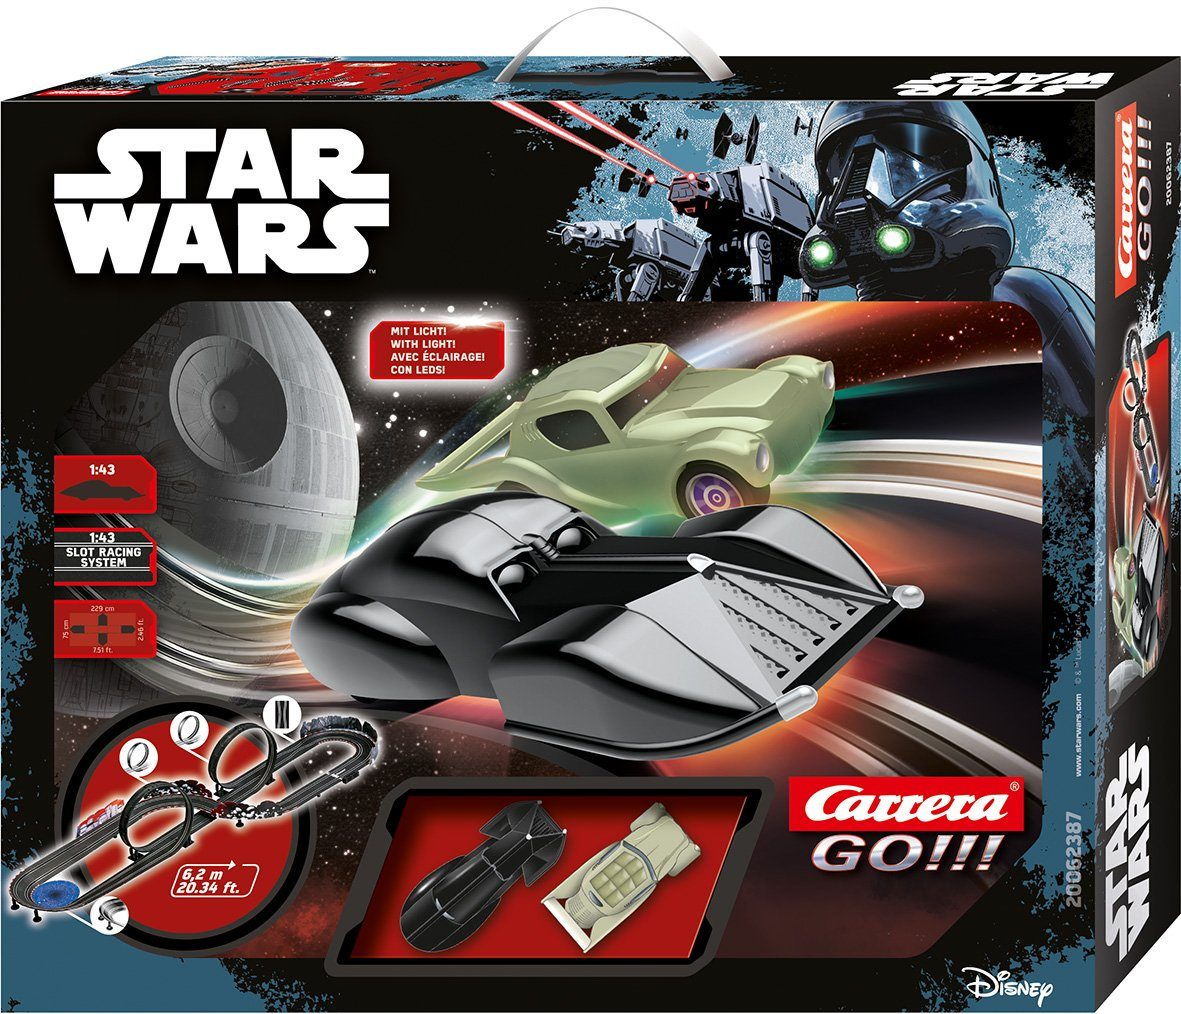 Carrera Autorennbahn, »Carrera® GO!!! Disney Star Wars«